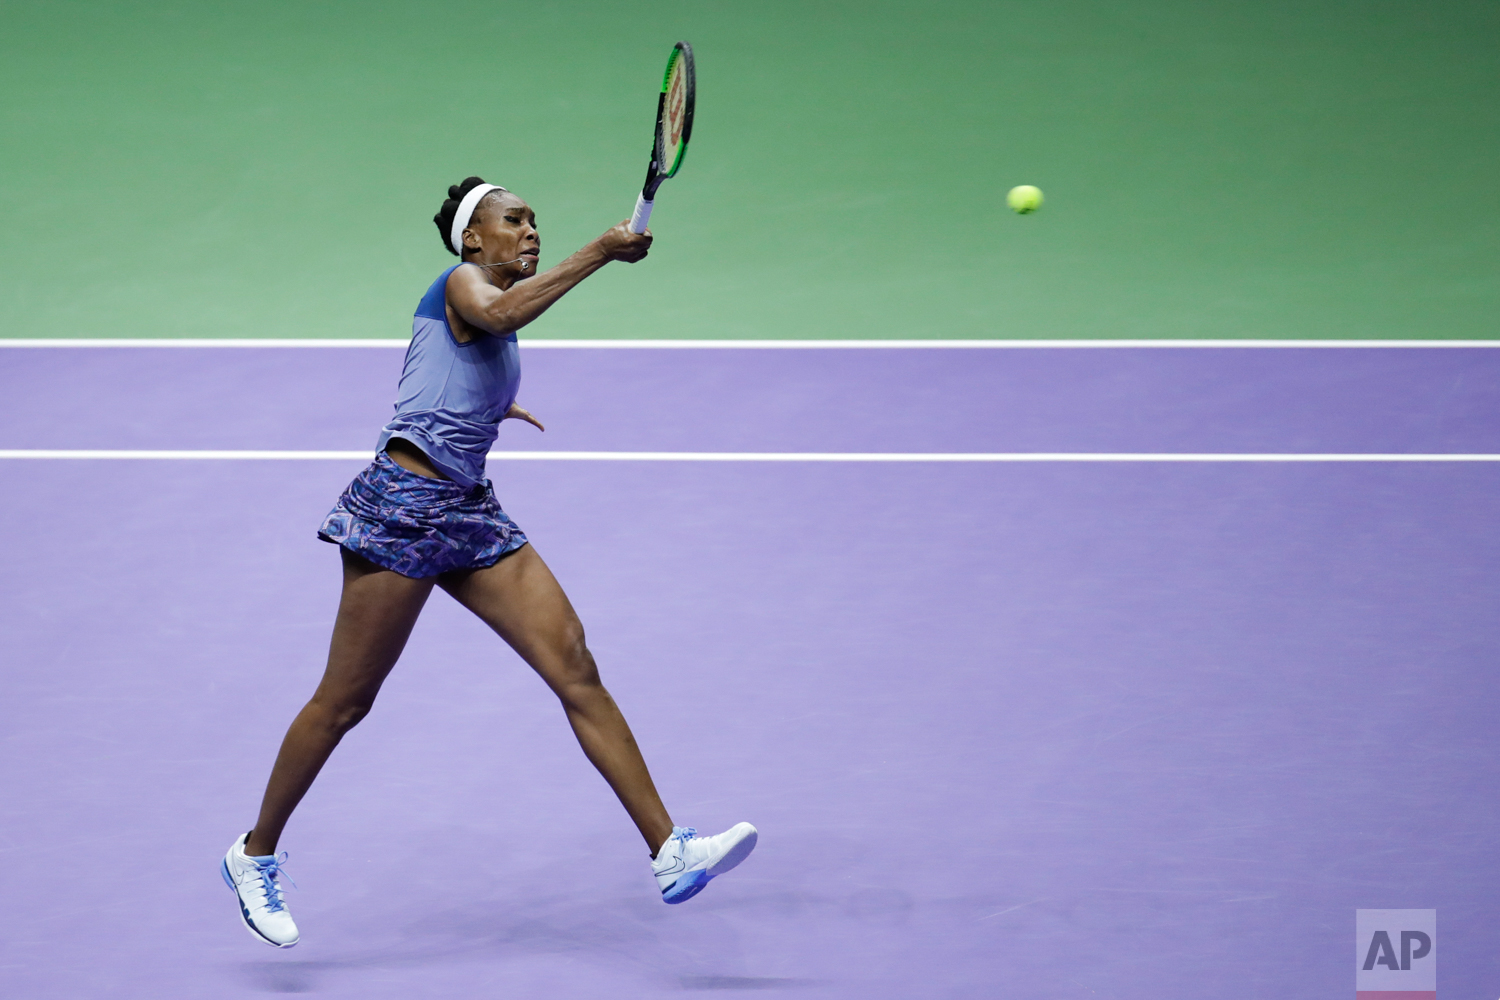 Venus Williams of the United States makes a forehand return against Caroline Wozniacki of Denmark during their singles final match at the WTA tennis tournament in Singapore, on Sunday, Oct. 29, 2017. (AP Photo/Yong Teck Lim)